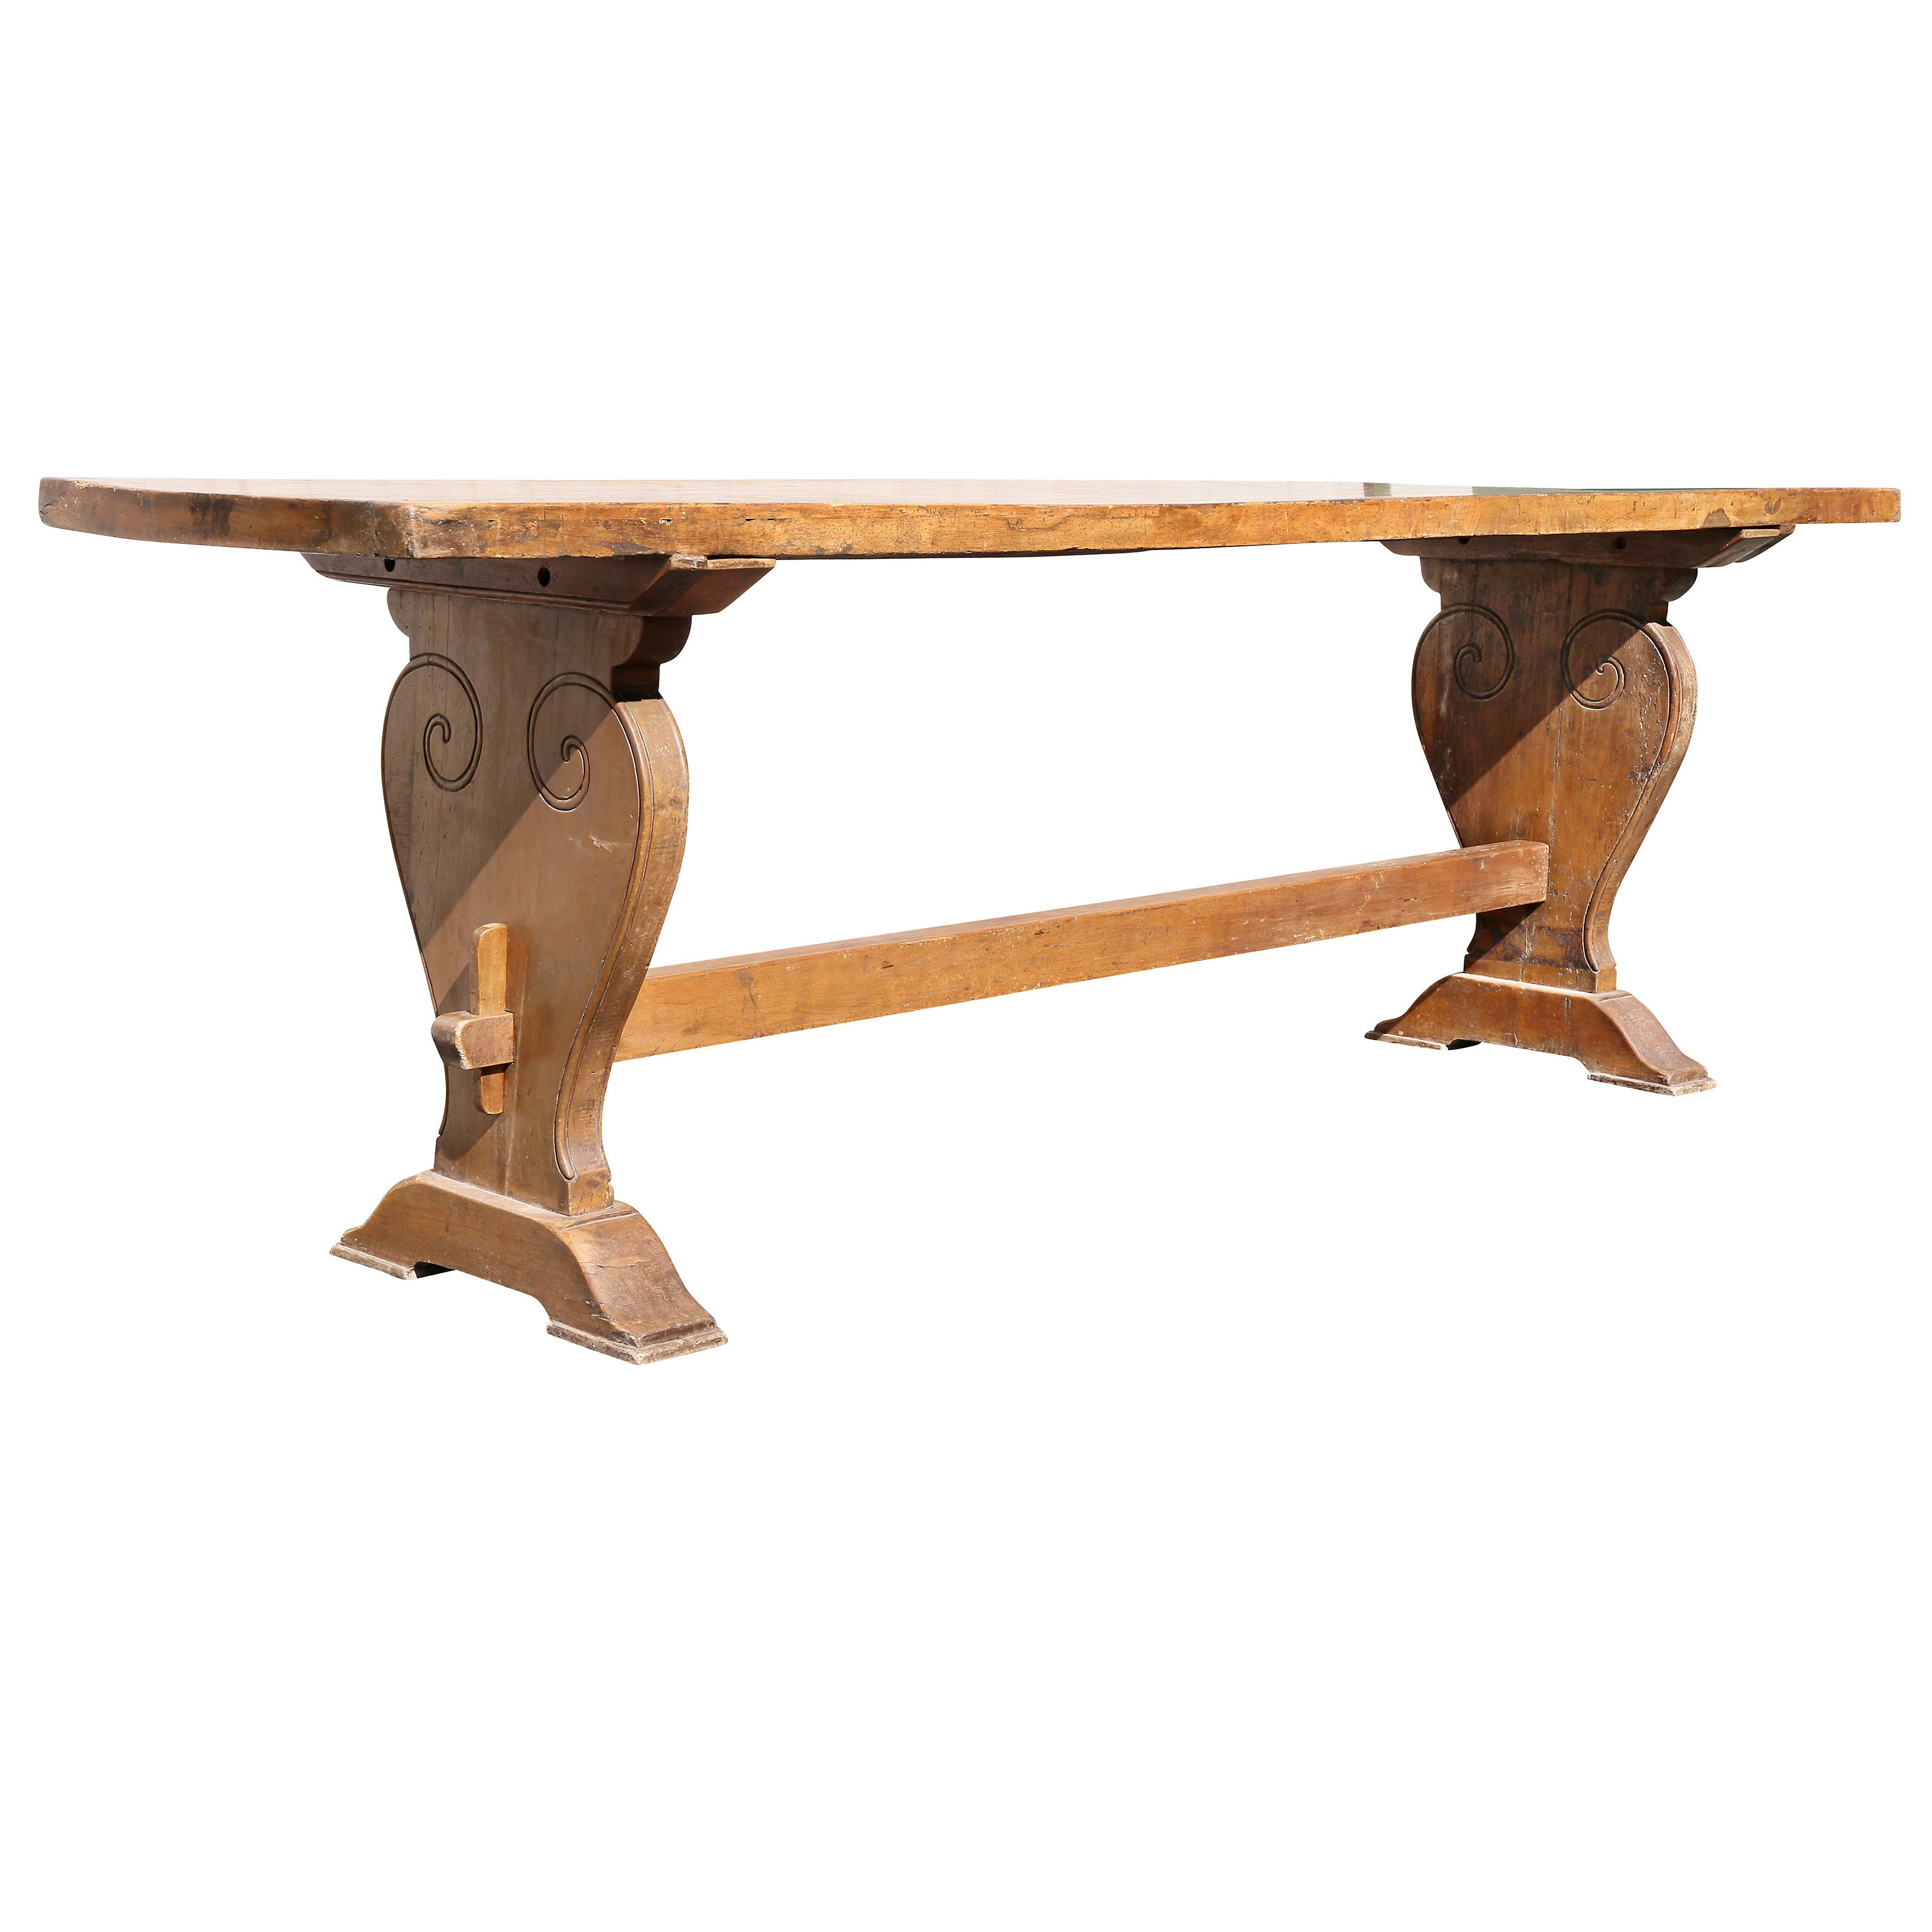 Italian Baroque Walnut Trestle Table